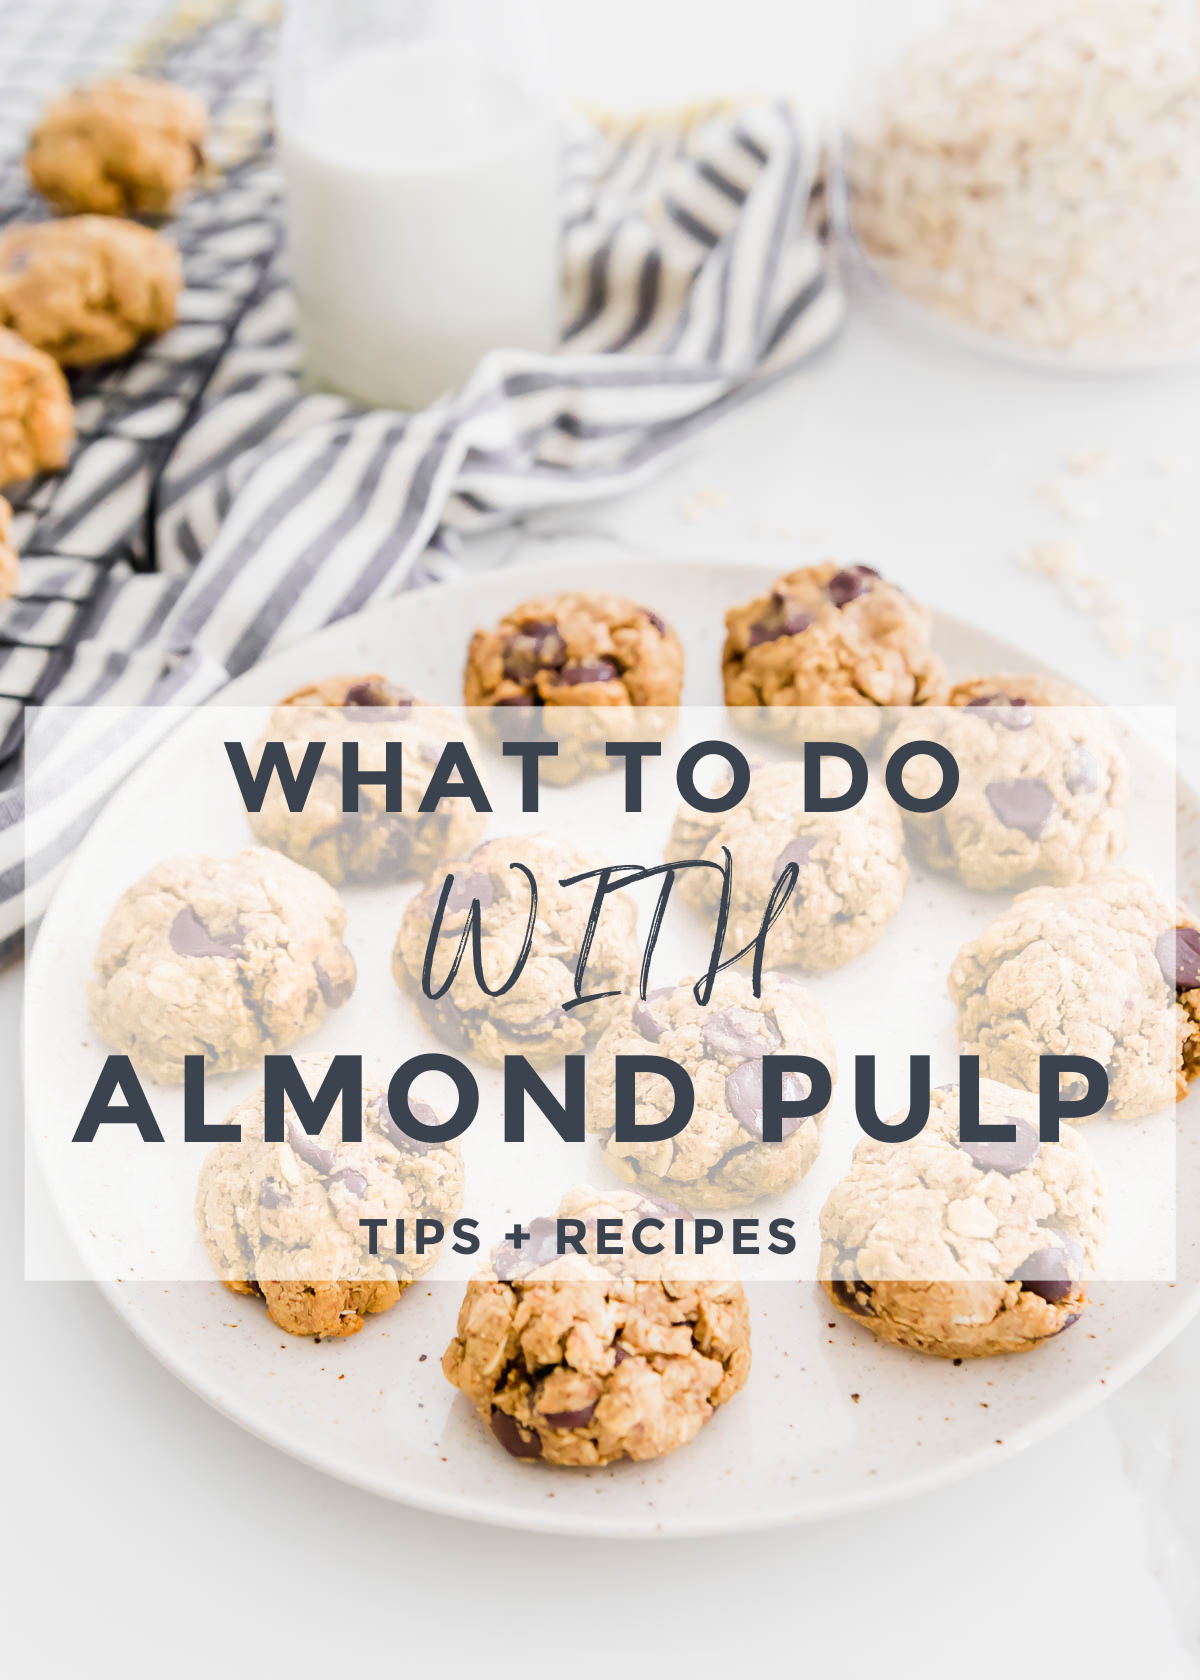 Everything you need to know about leftover almond pulp (from making homemade almond milk) along with a compilation of sweet & savory recipes for how to use it.